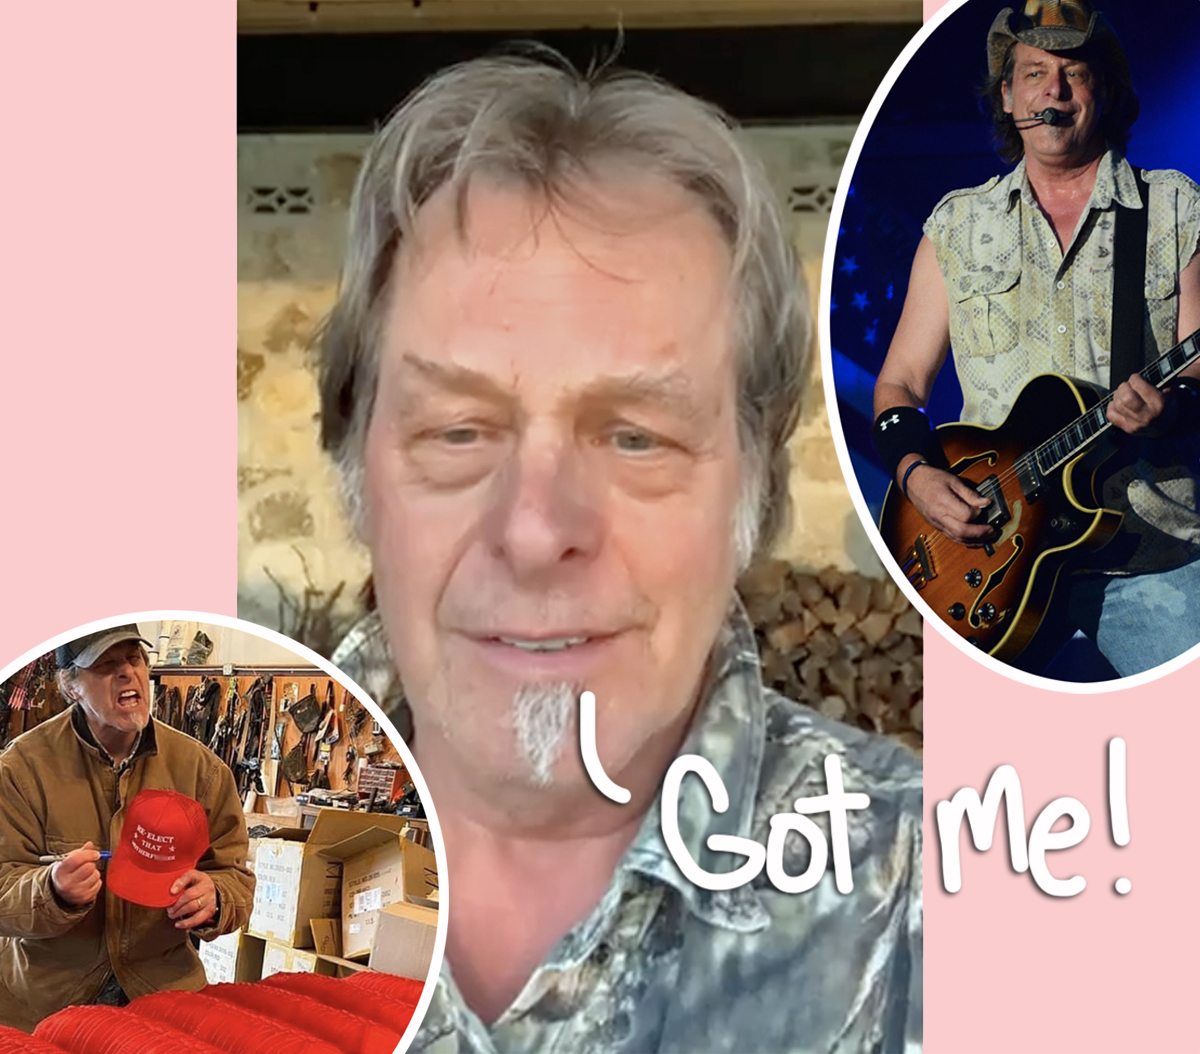 COVID Denier Ted Nugent Tests Positive But Continues To Dismiss It Even While Sick!